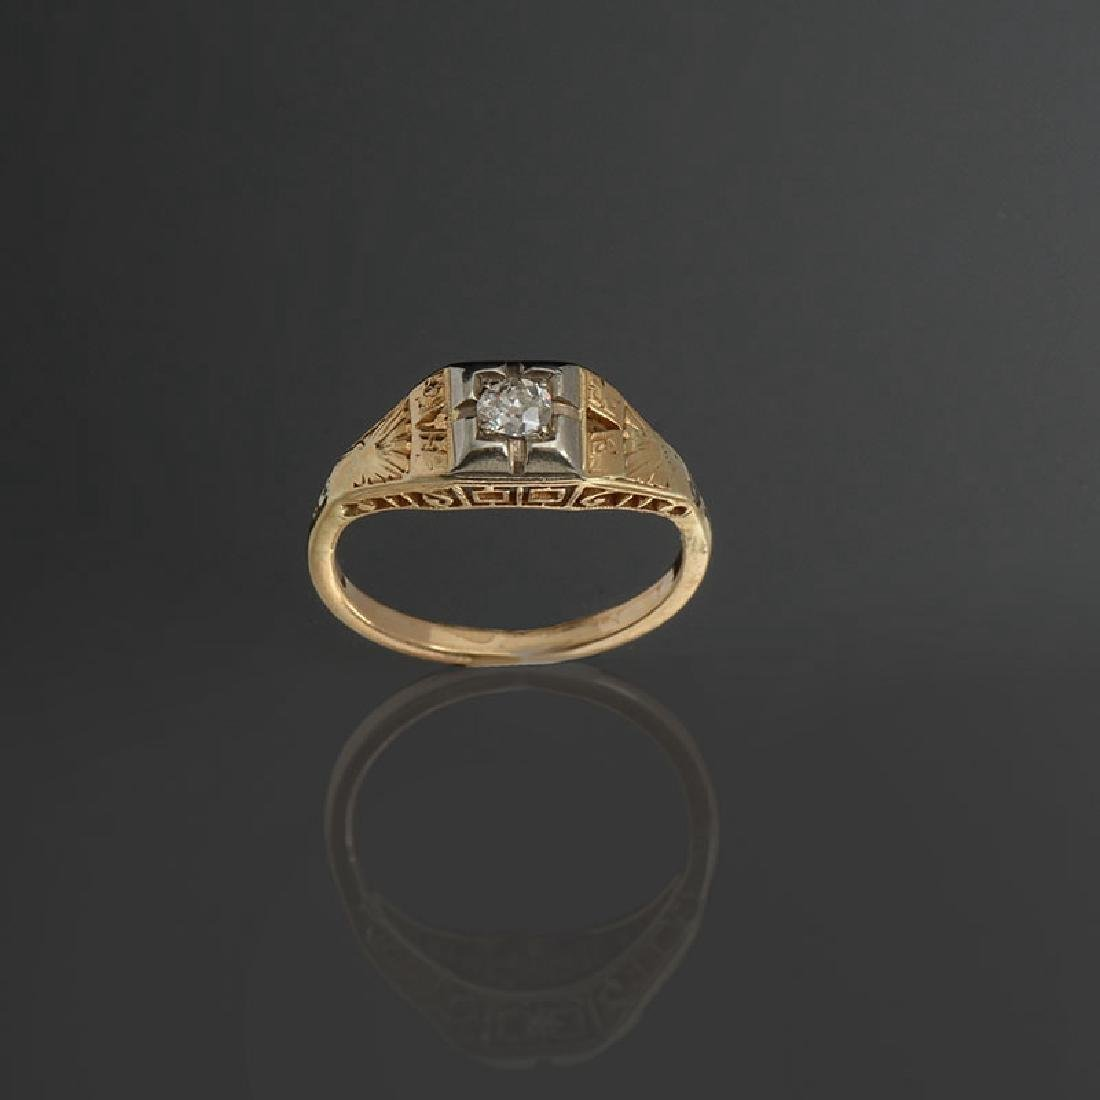 14K & DIAMOND EDWARDIAN FILIGREE SOLITAIRE RING